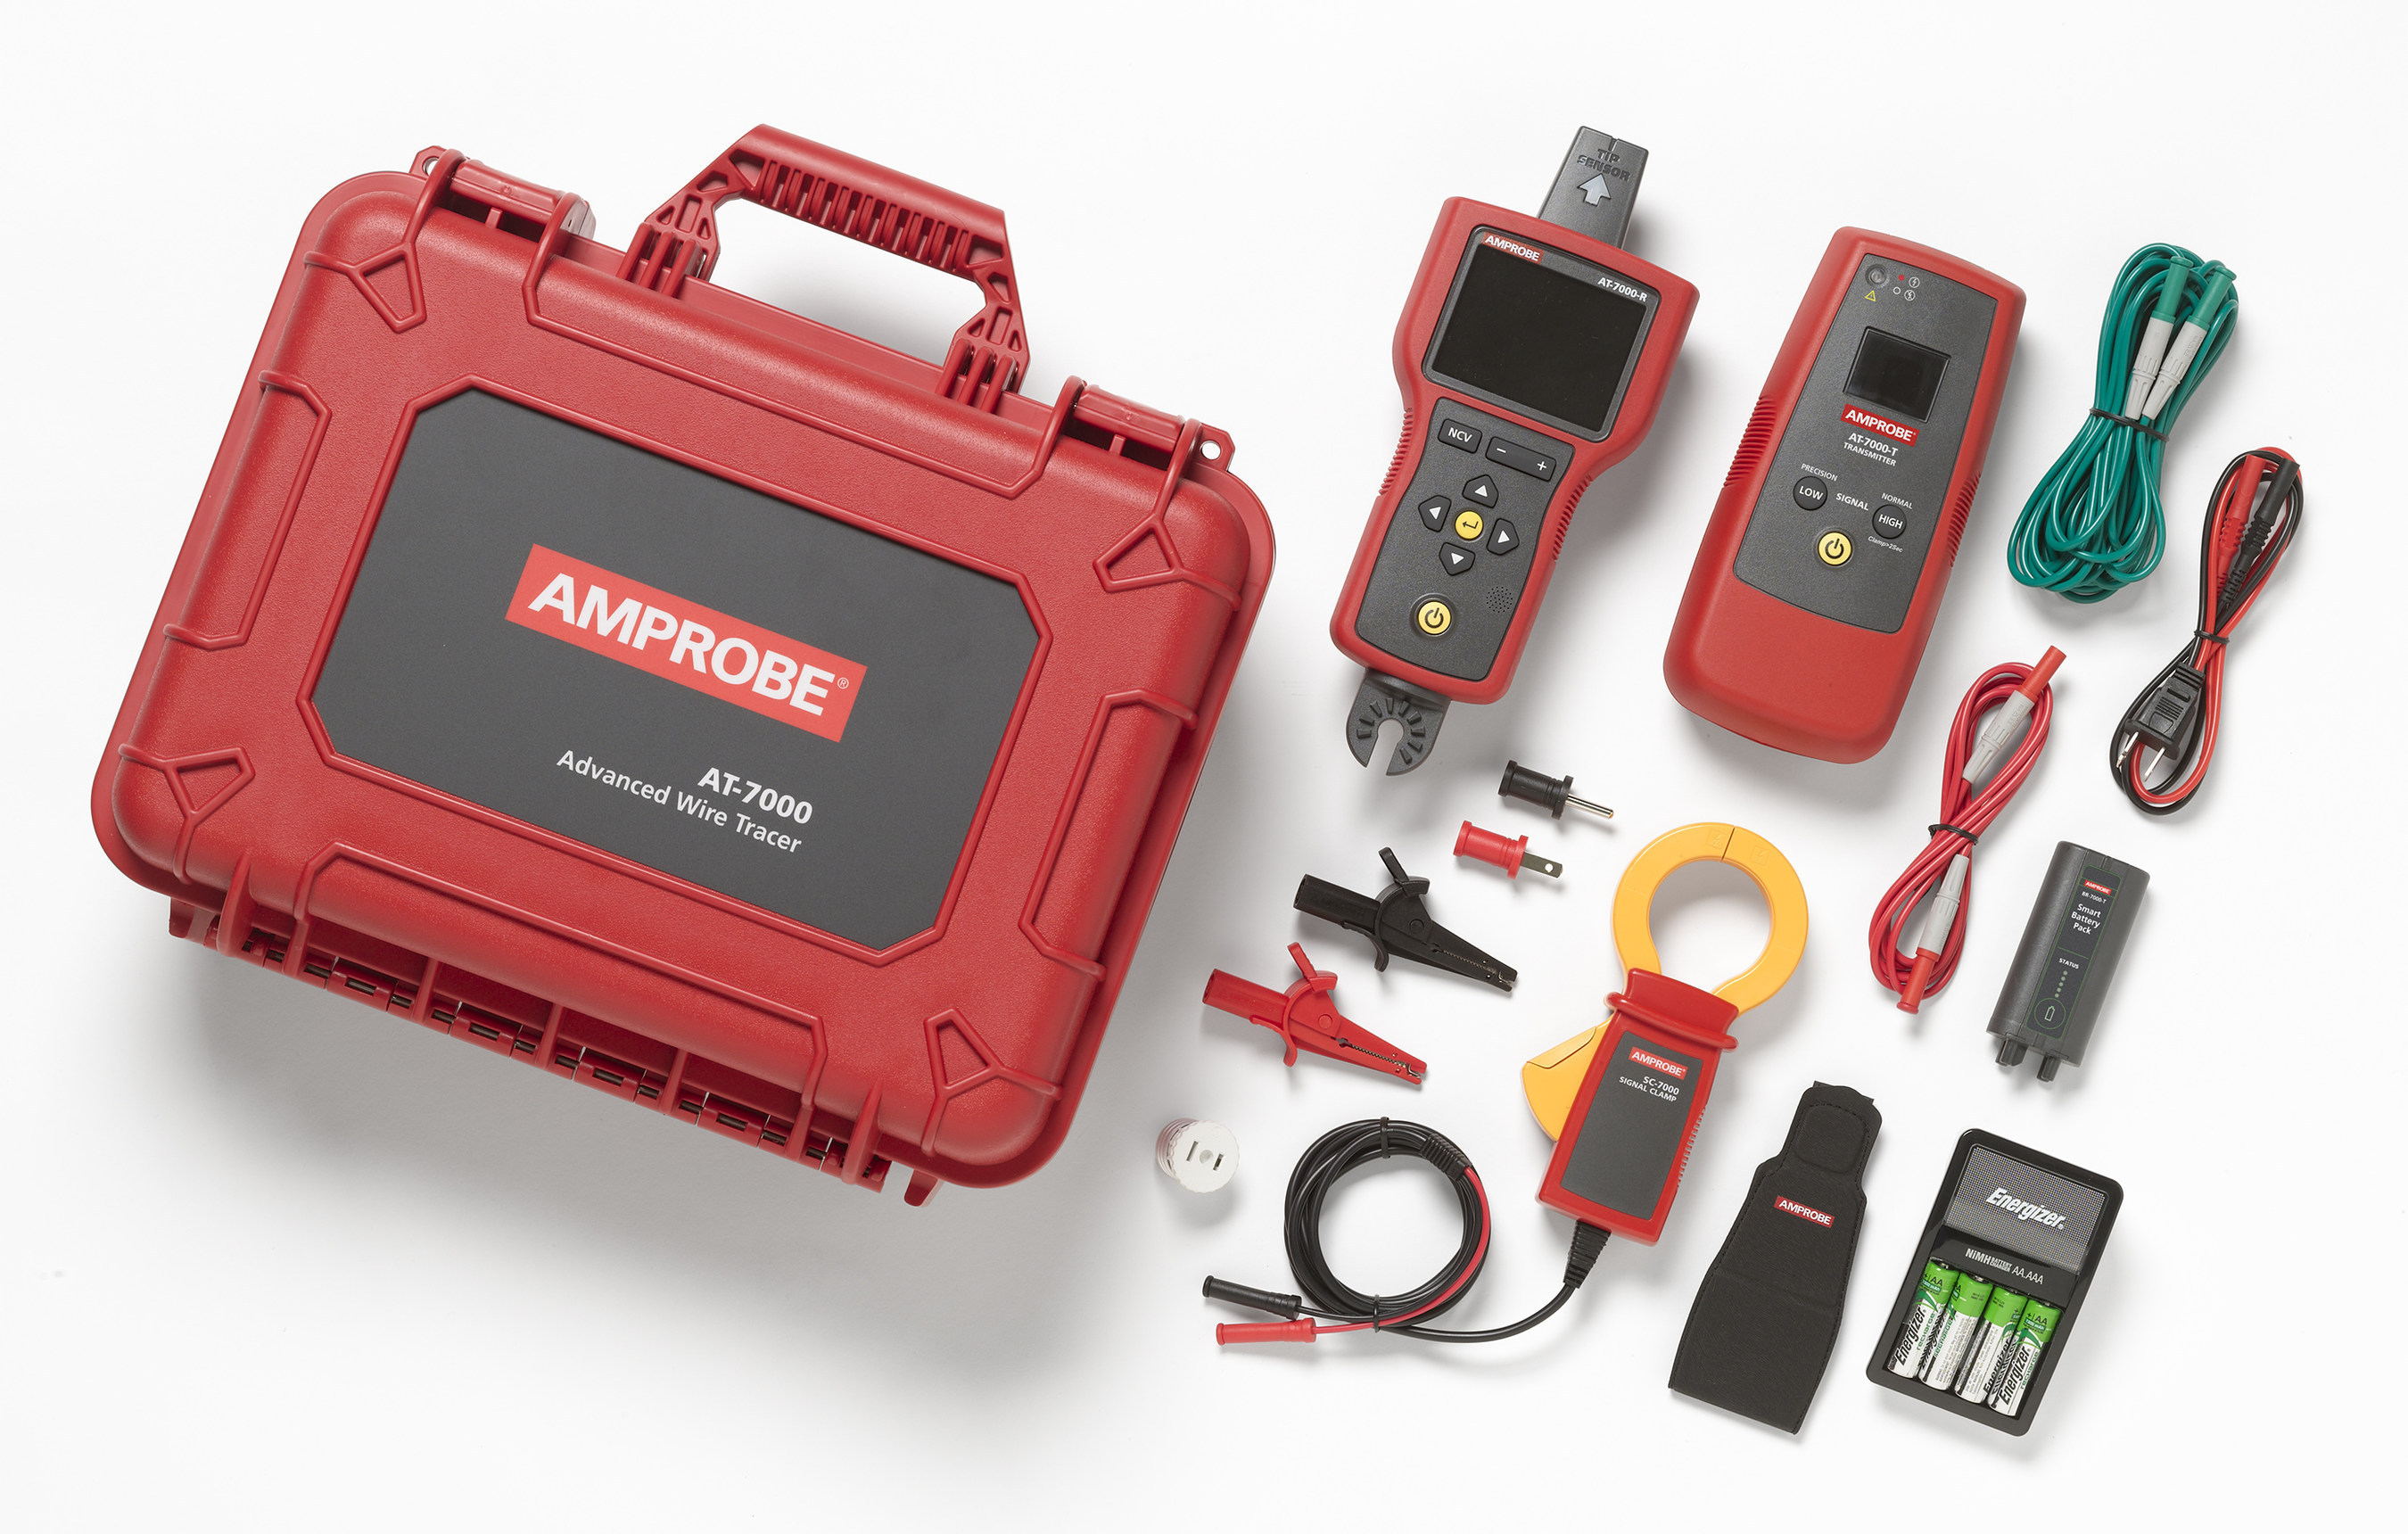 Amprobe AT-7000 Advanced Wire Tracer quickly finds wires and ...